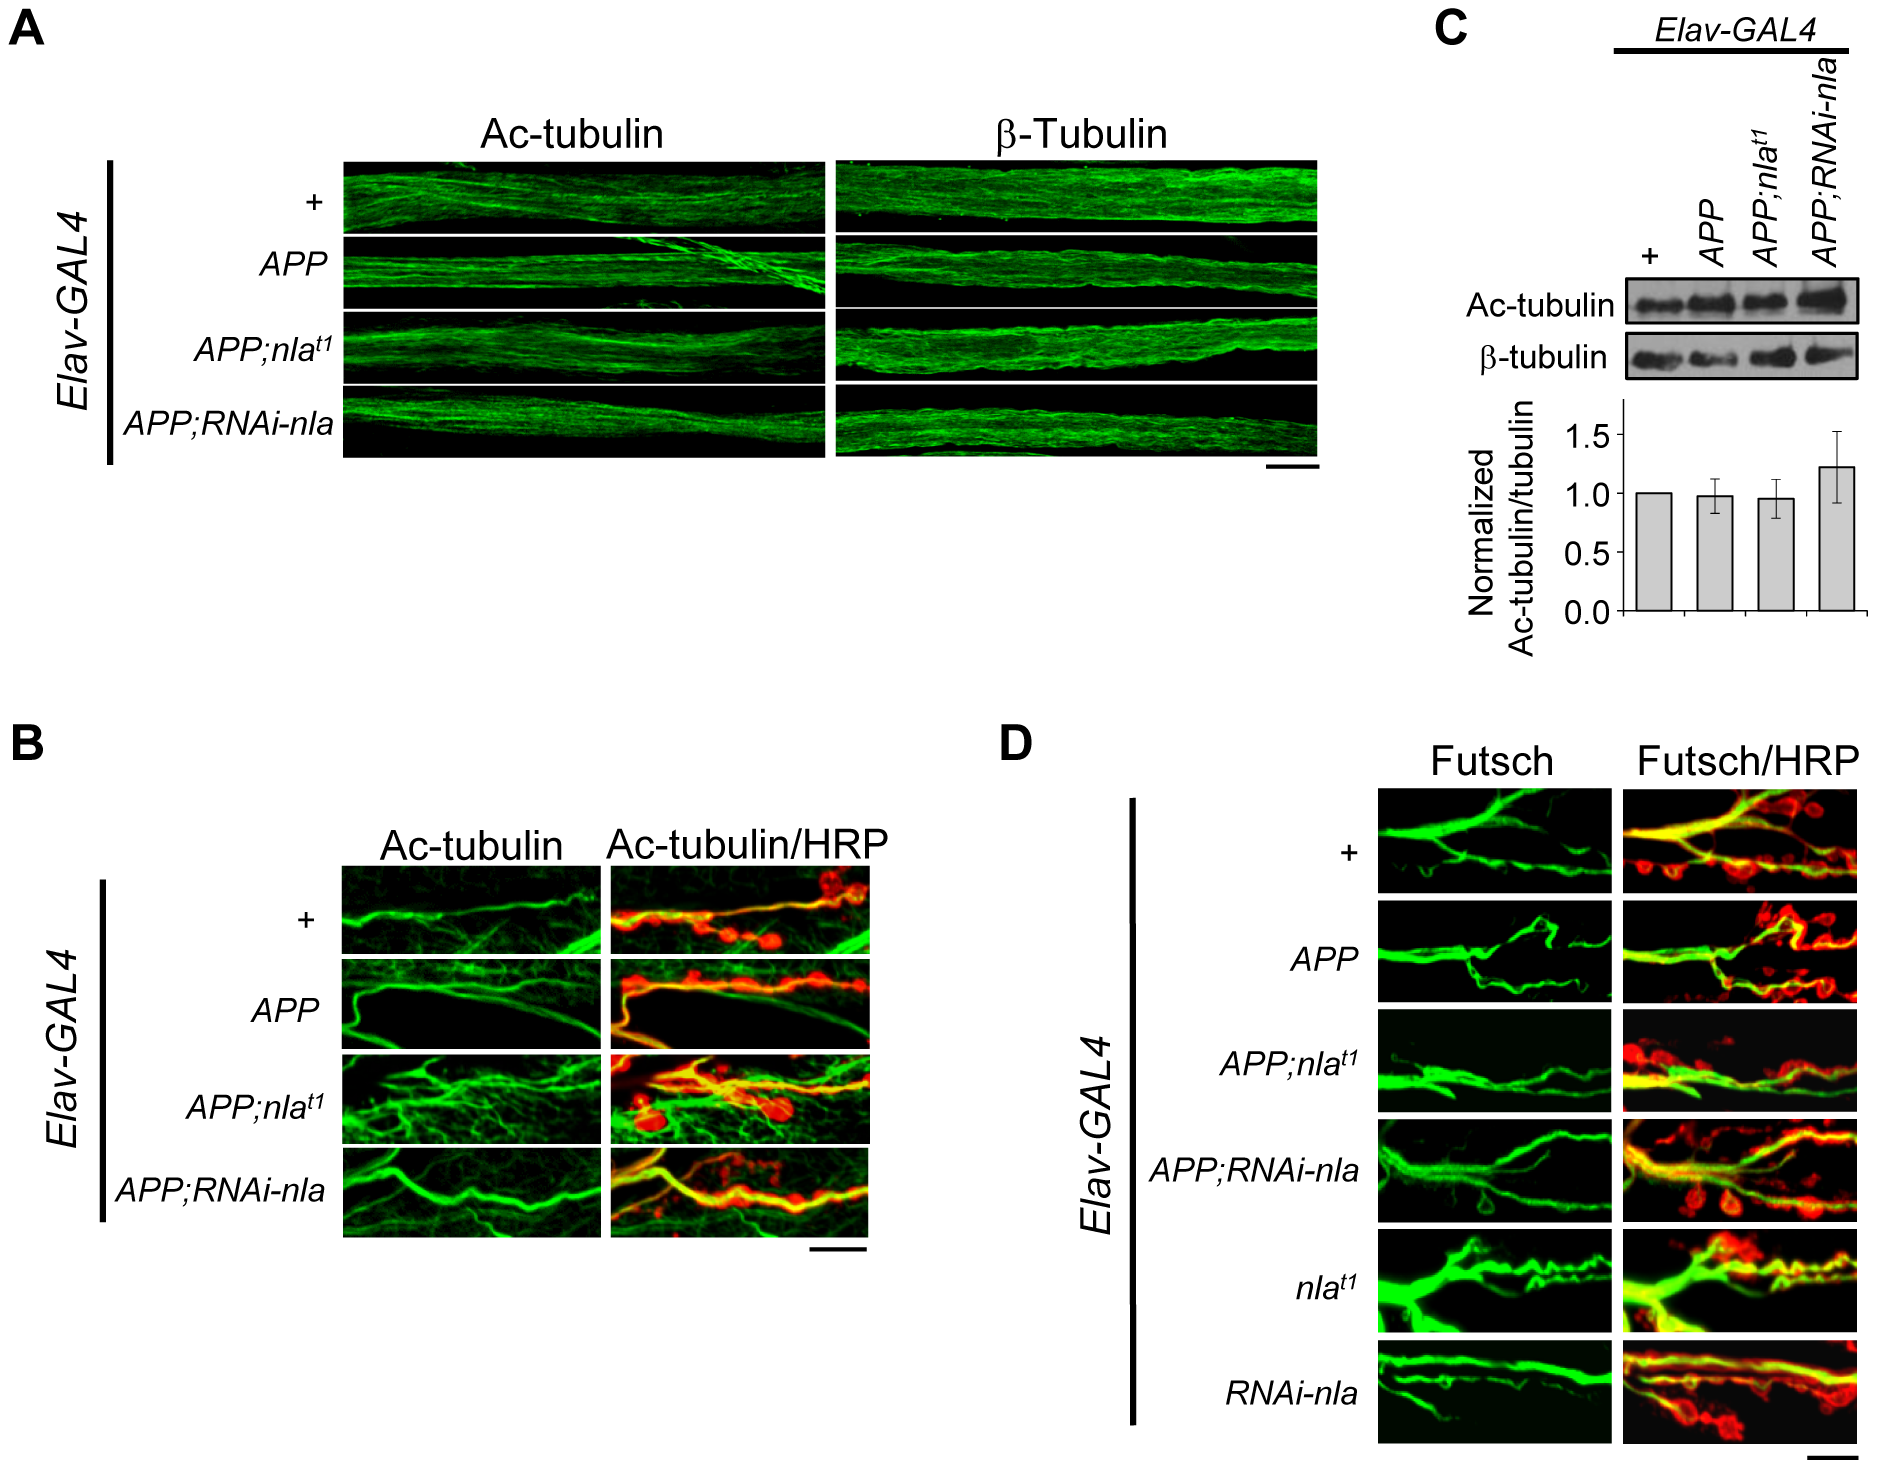 <i>APP</i> overexpression does not alter gross microtubule structure in the axons or NMJ.